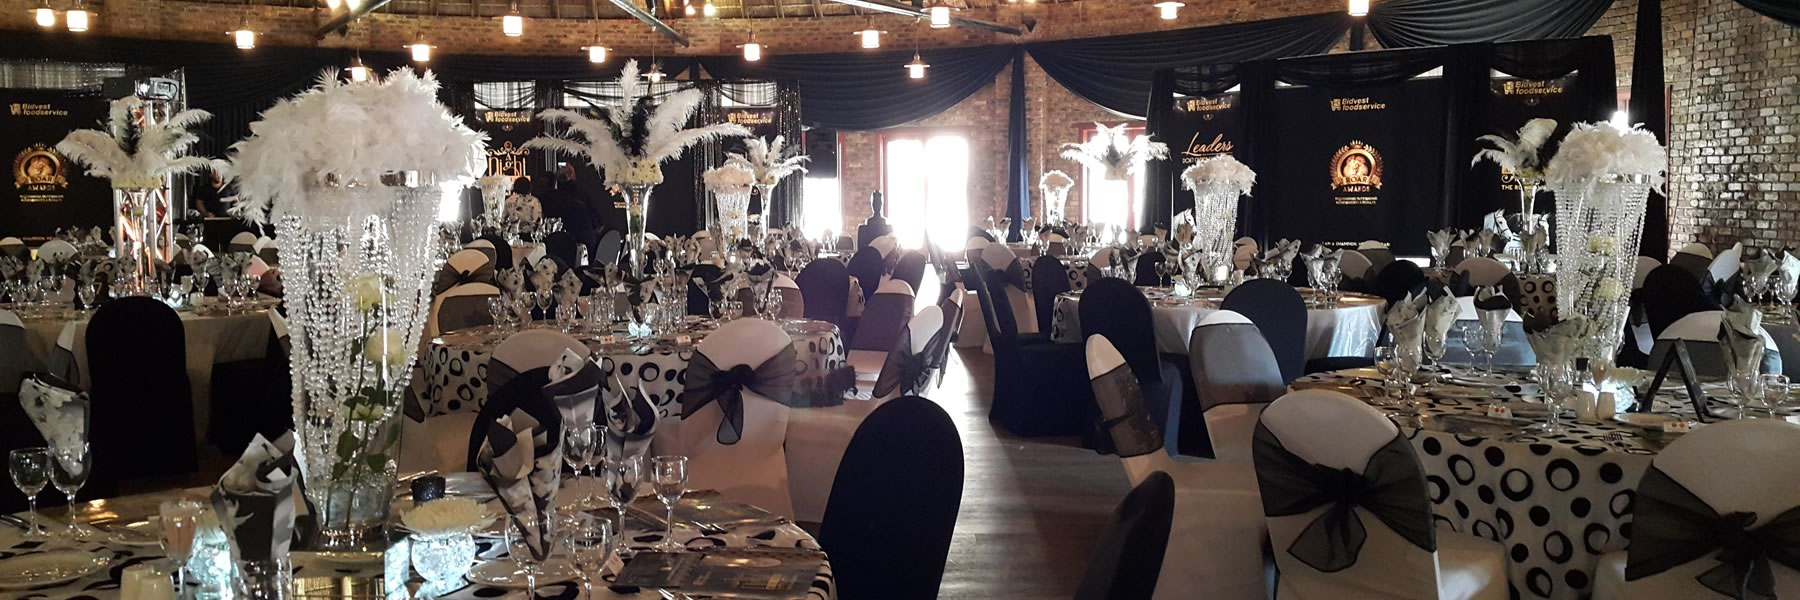 Ambrosia Corporate Events and Decor